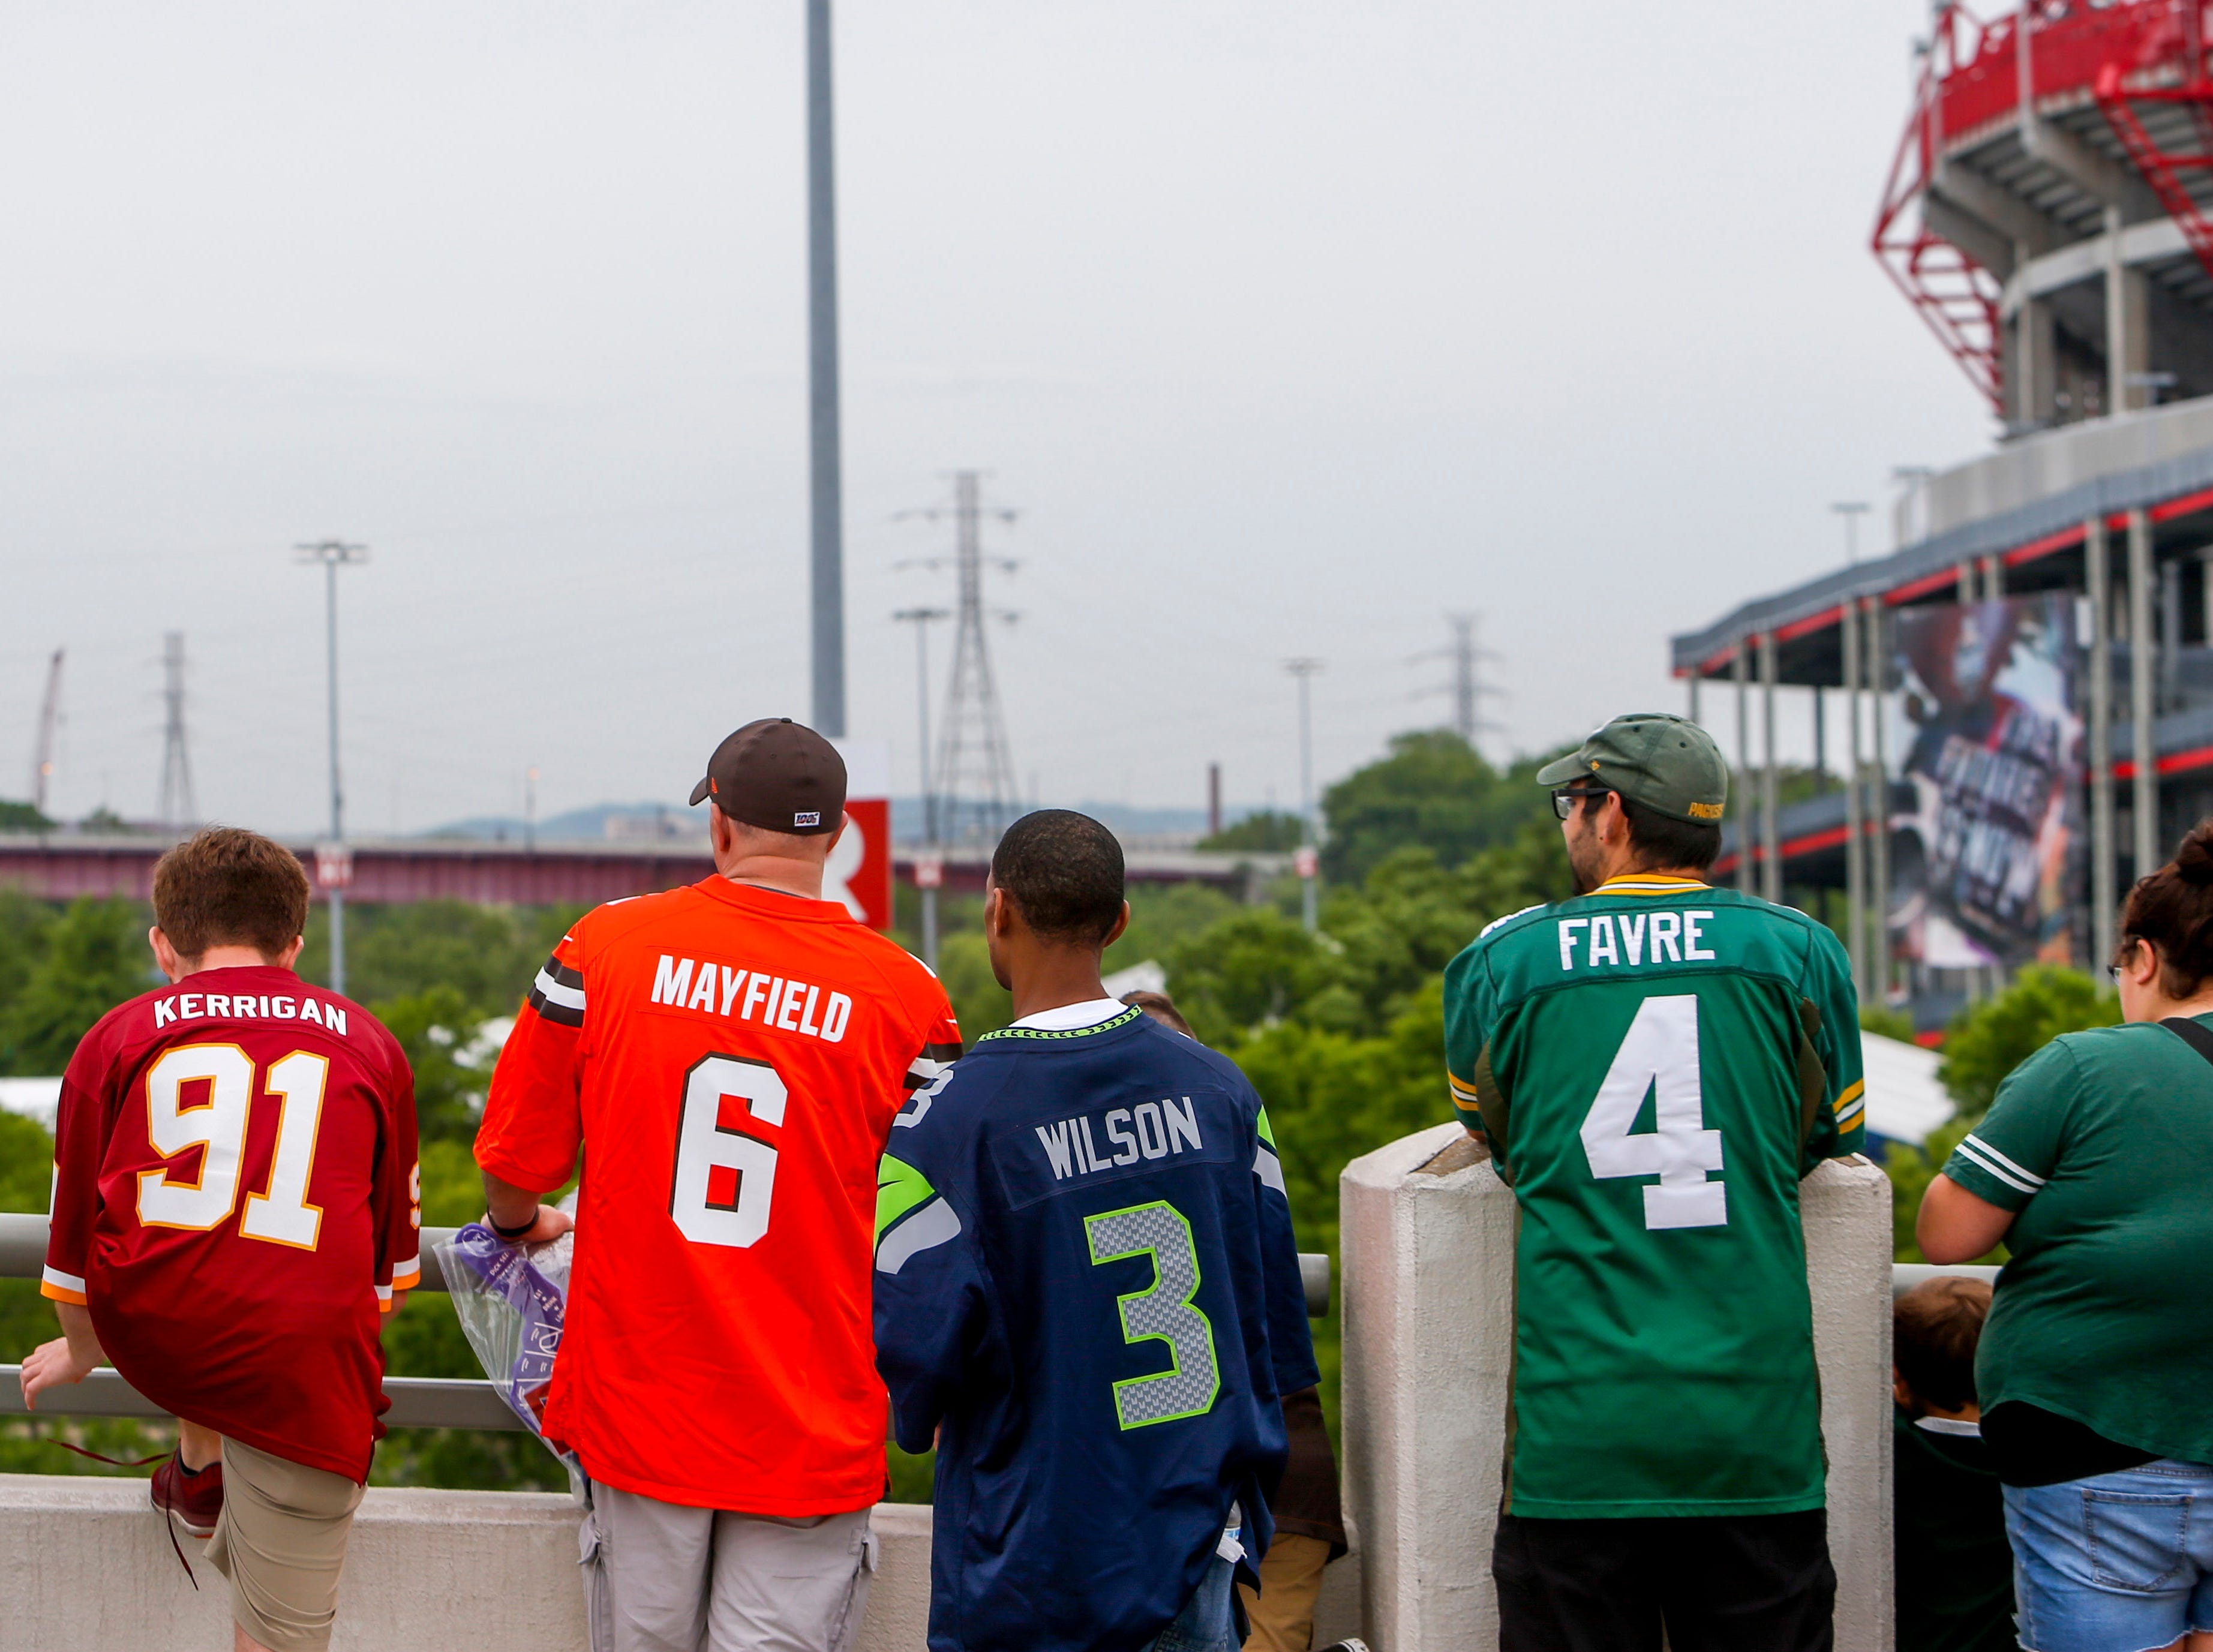 Fans of many teams line up on the railing of the bridge during the NFL Draft Experience at Nissan Stadium in Nashville, Tenn., on Thursday, April 25, 2019.